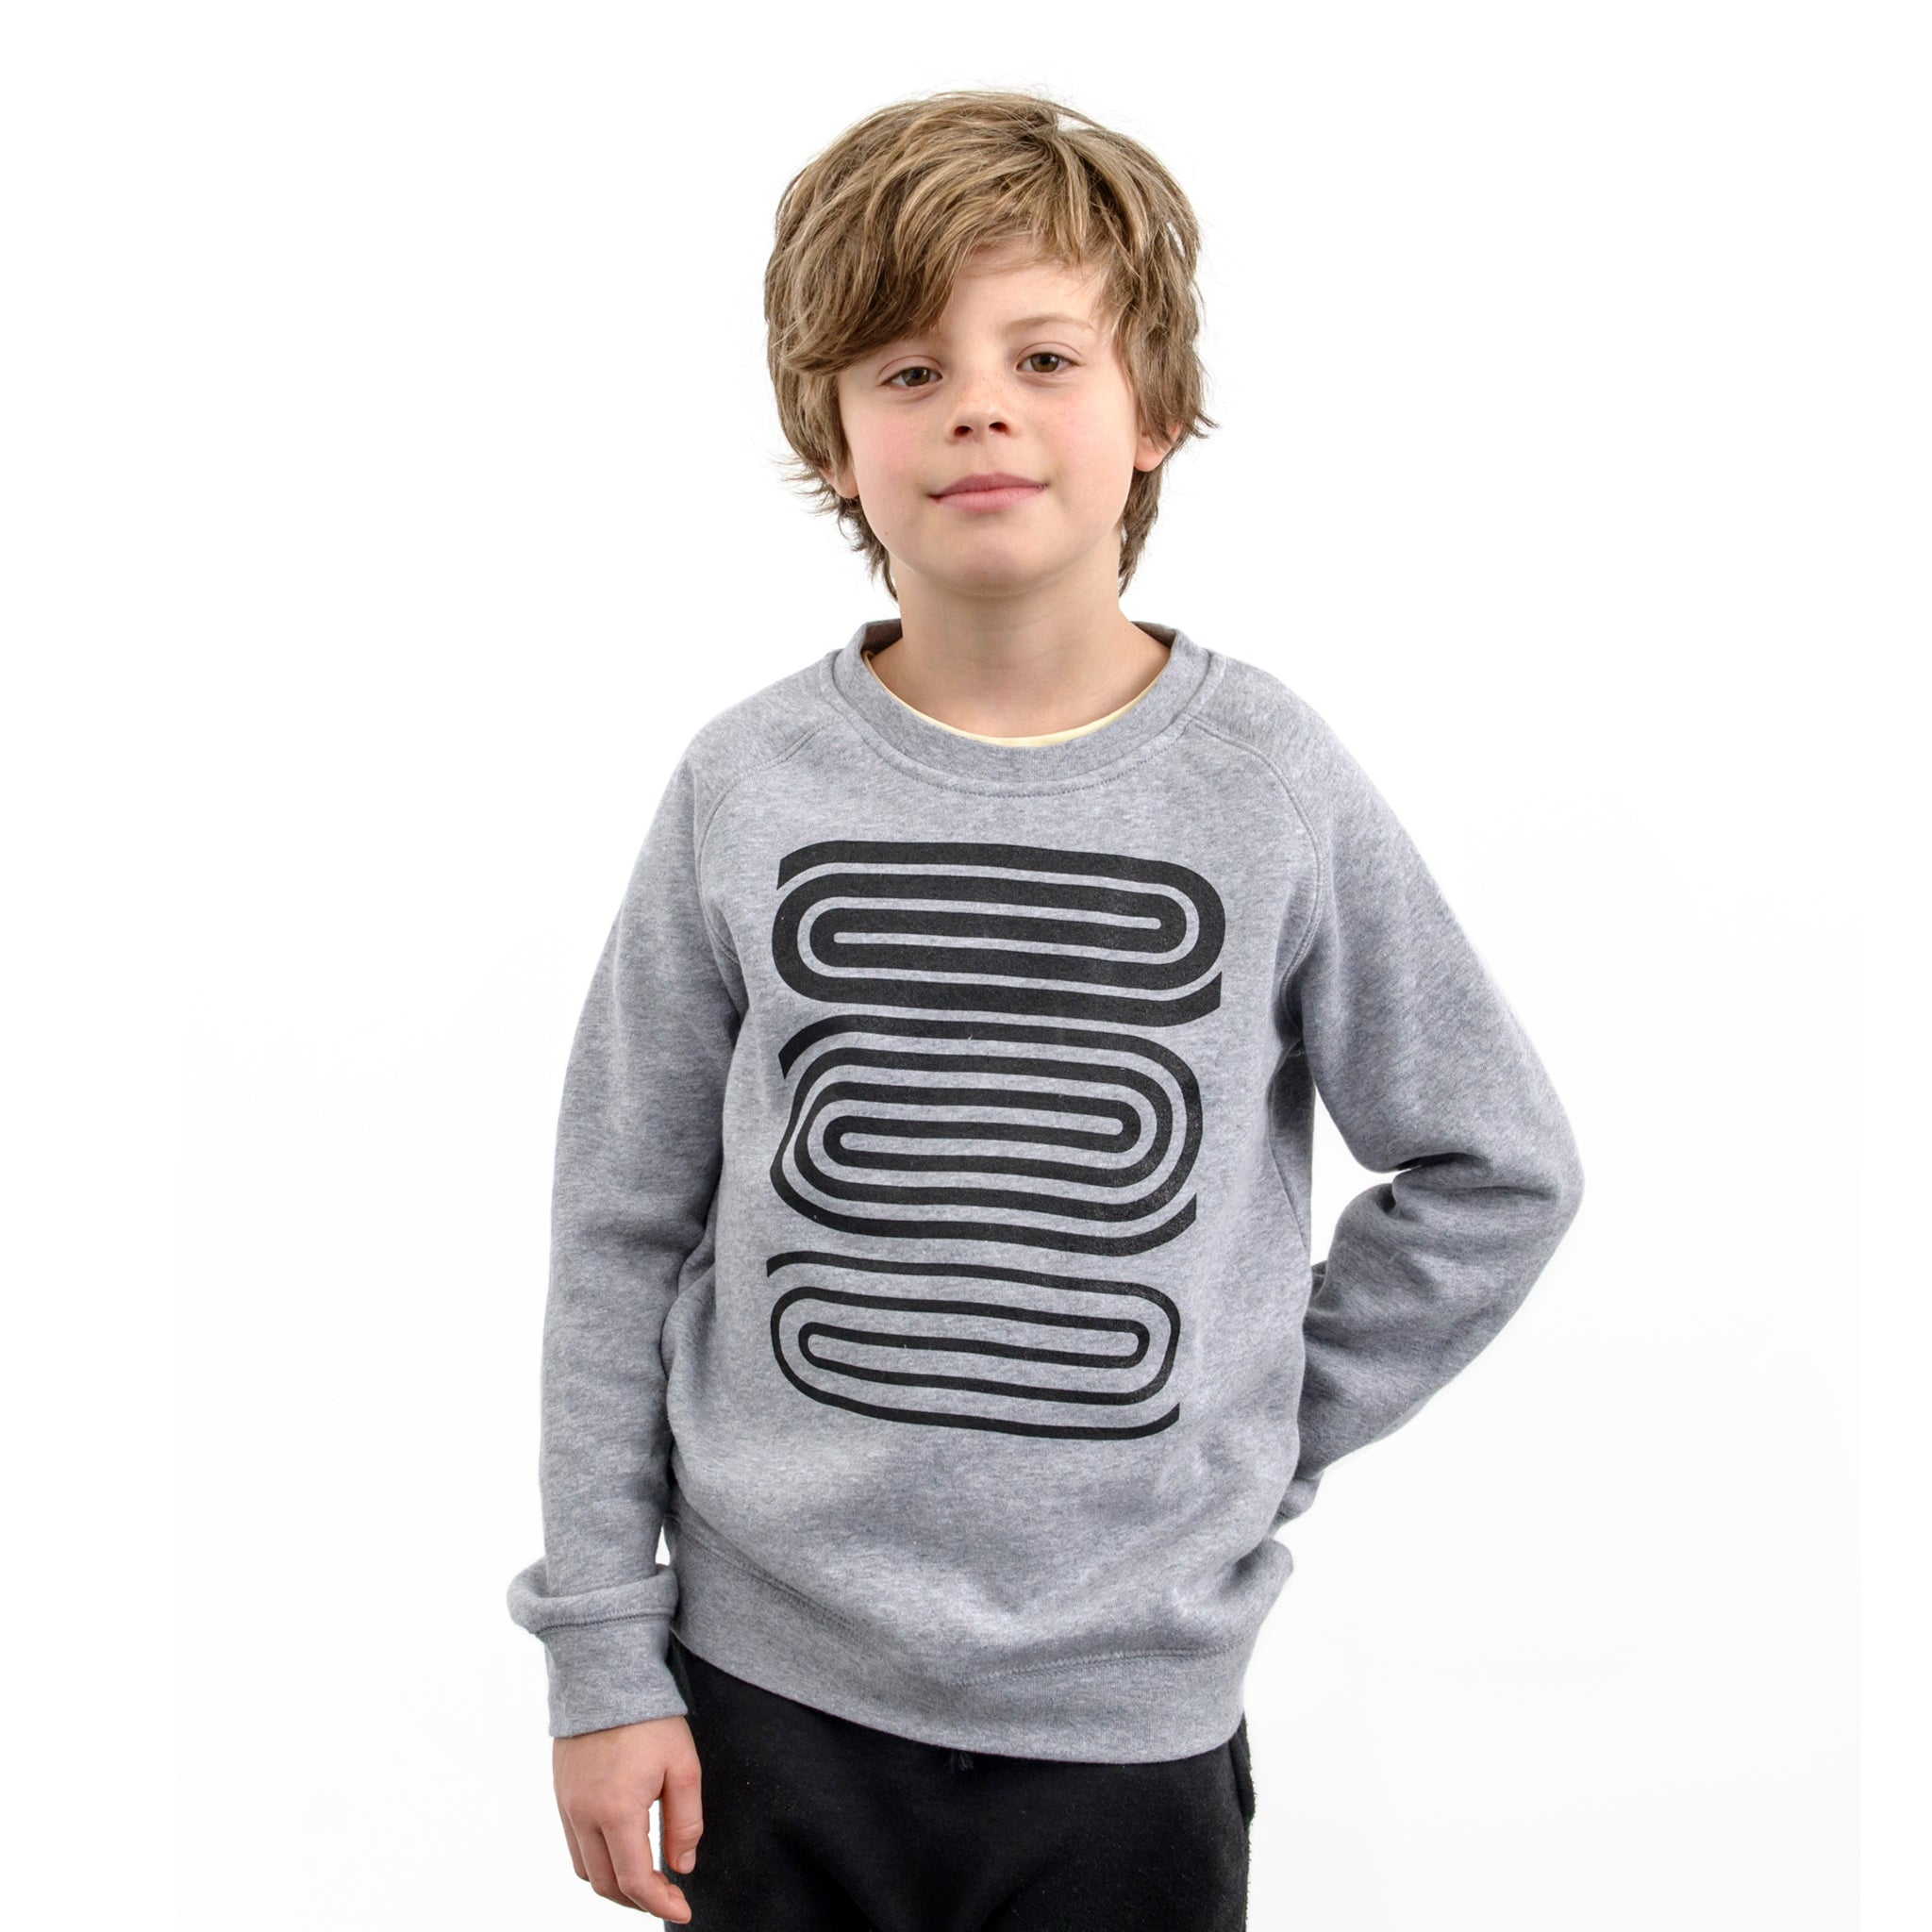 Untitled Black Spirals Kid's Sweat Image